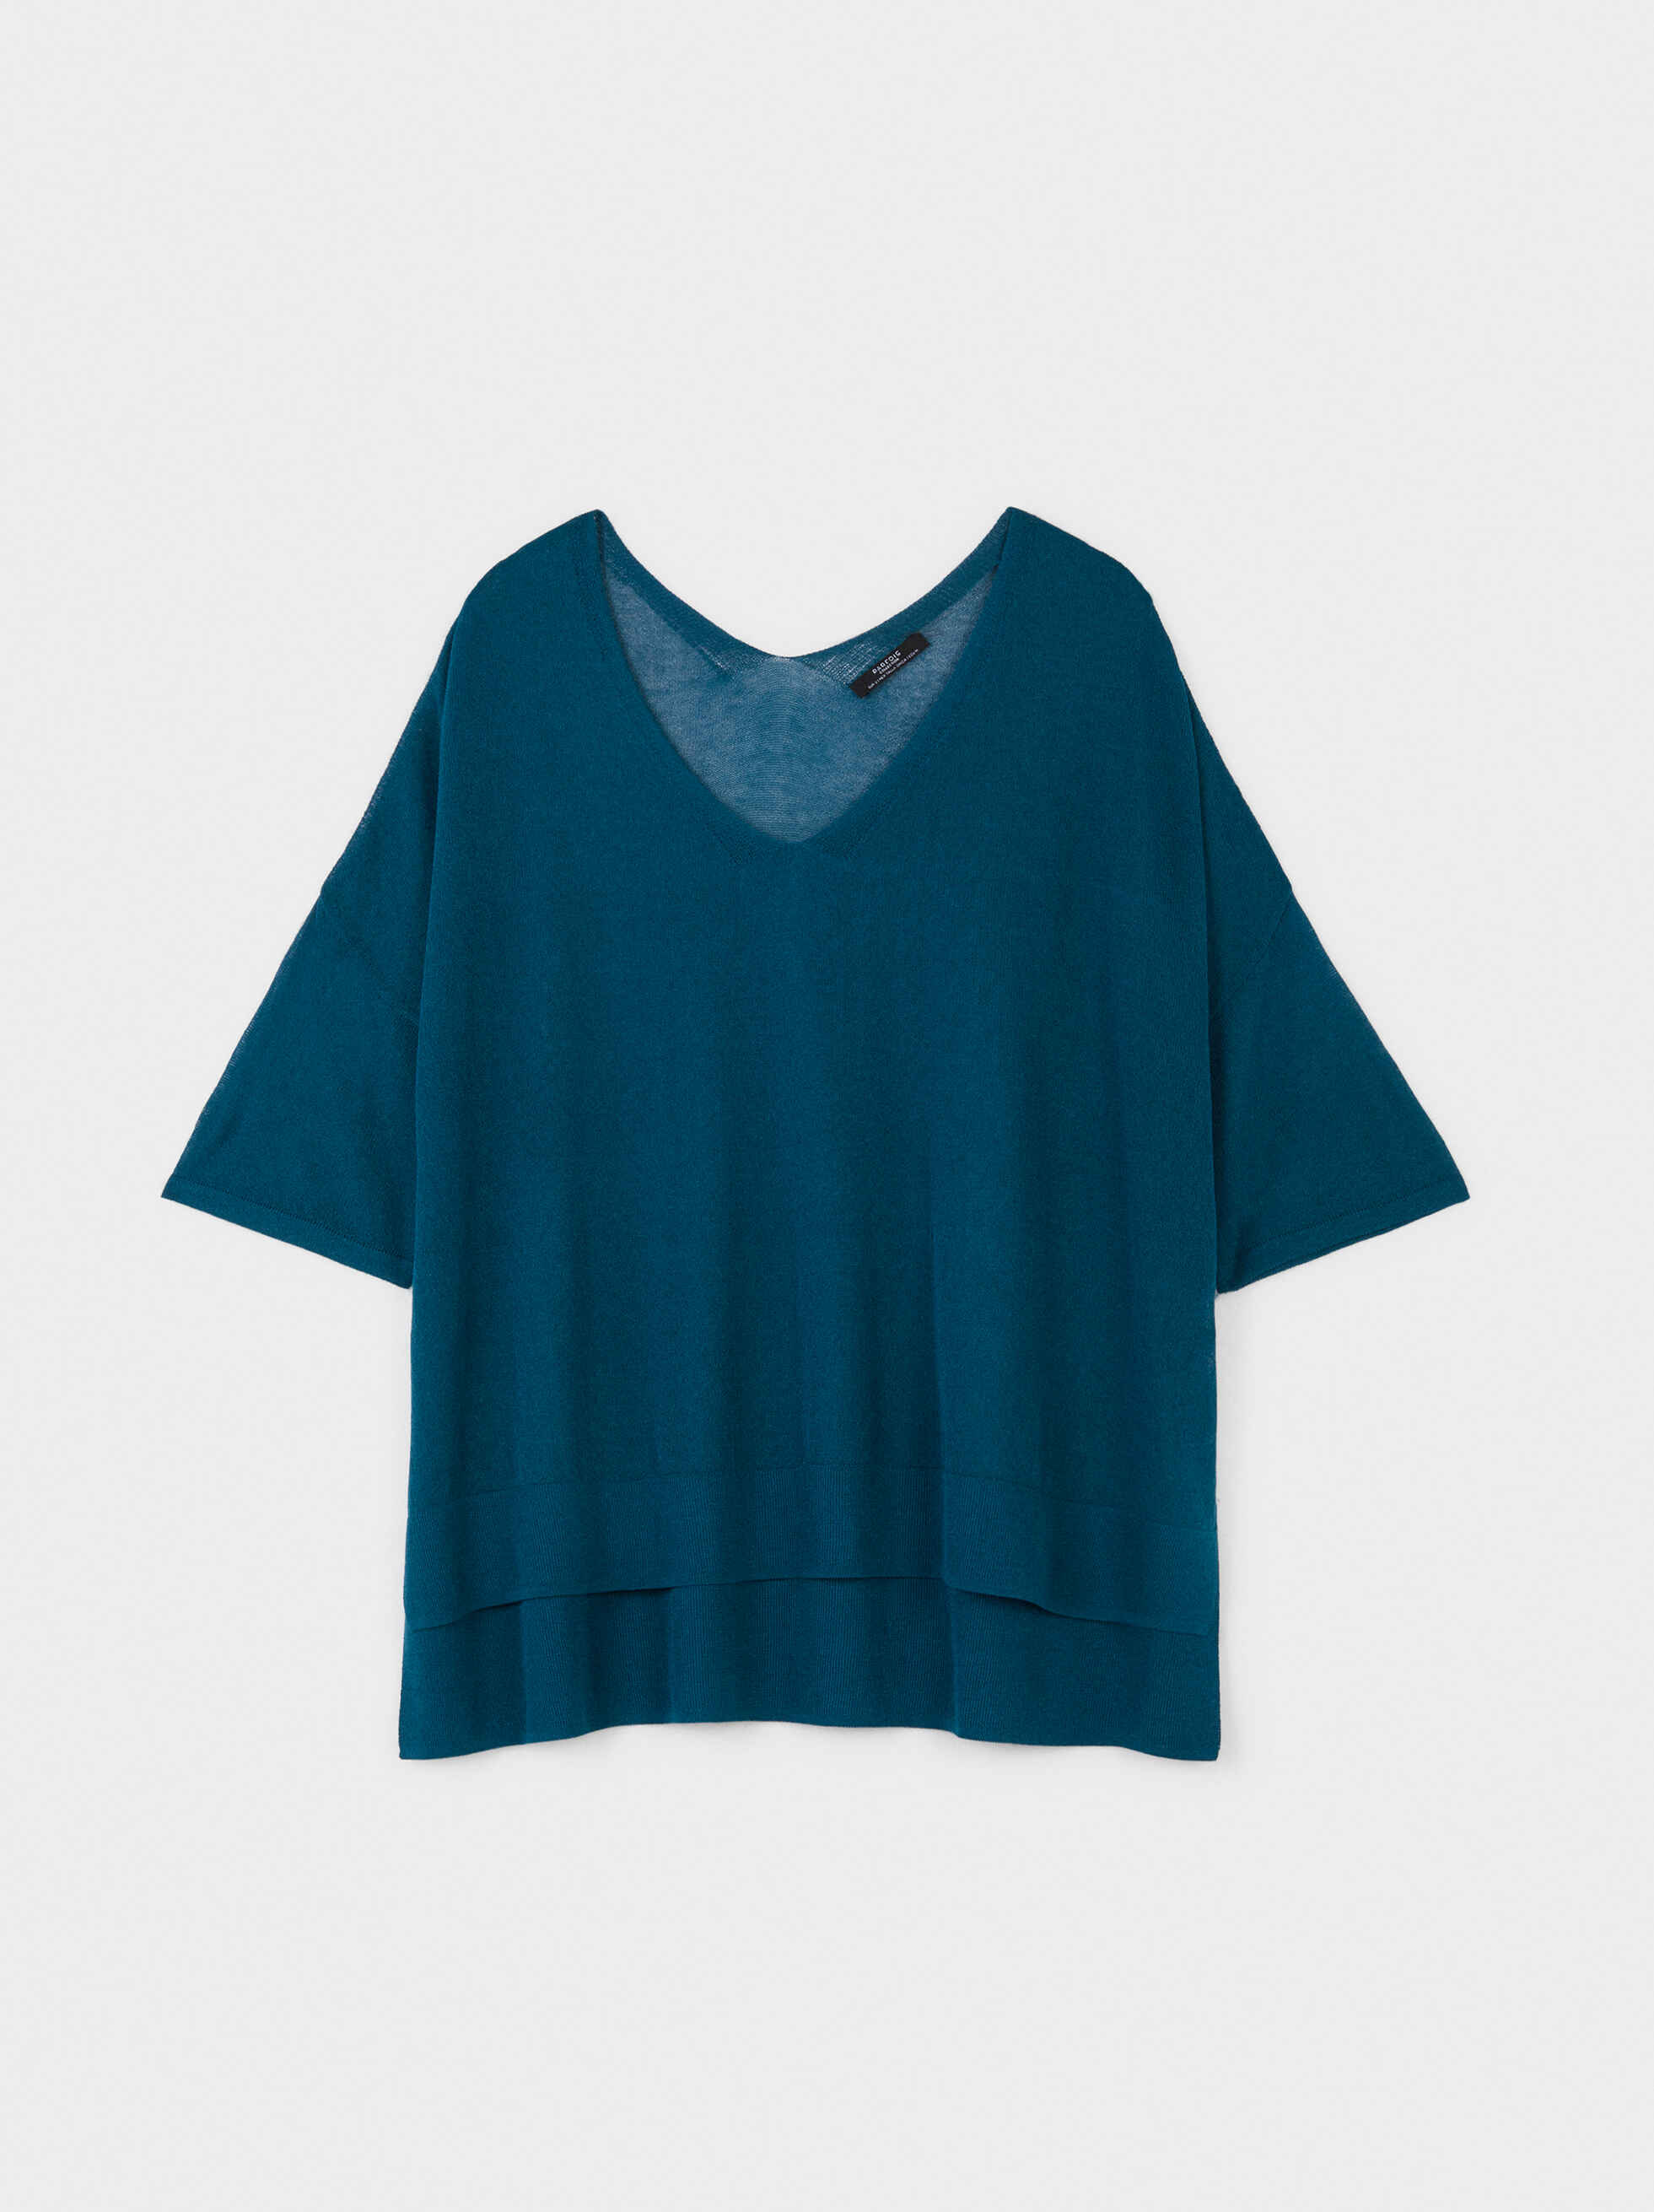 Short Sleeve Knit Top, , hi-res